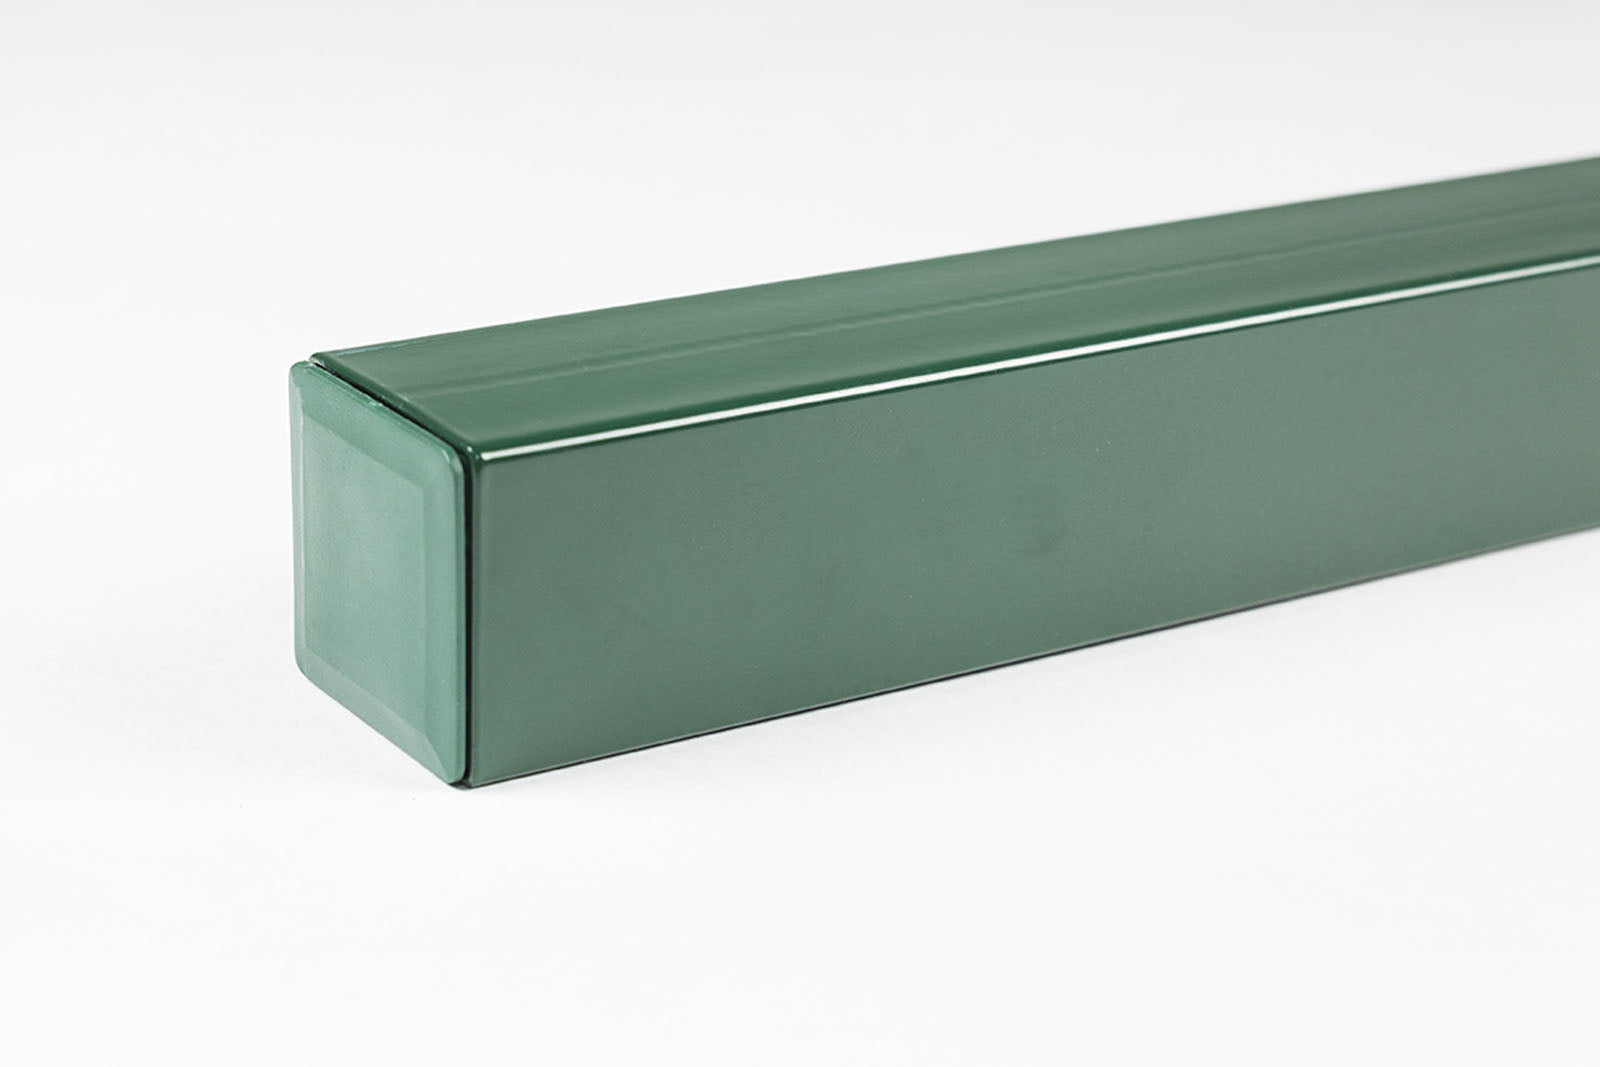 OUTLET GROENLO luxafence paal 6 x 6 x 180 cm groen gecoat